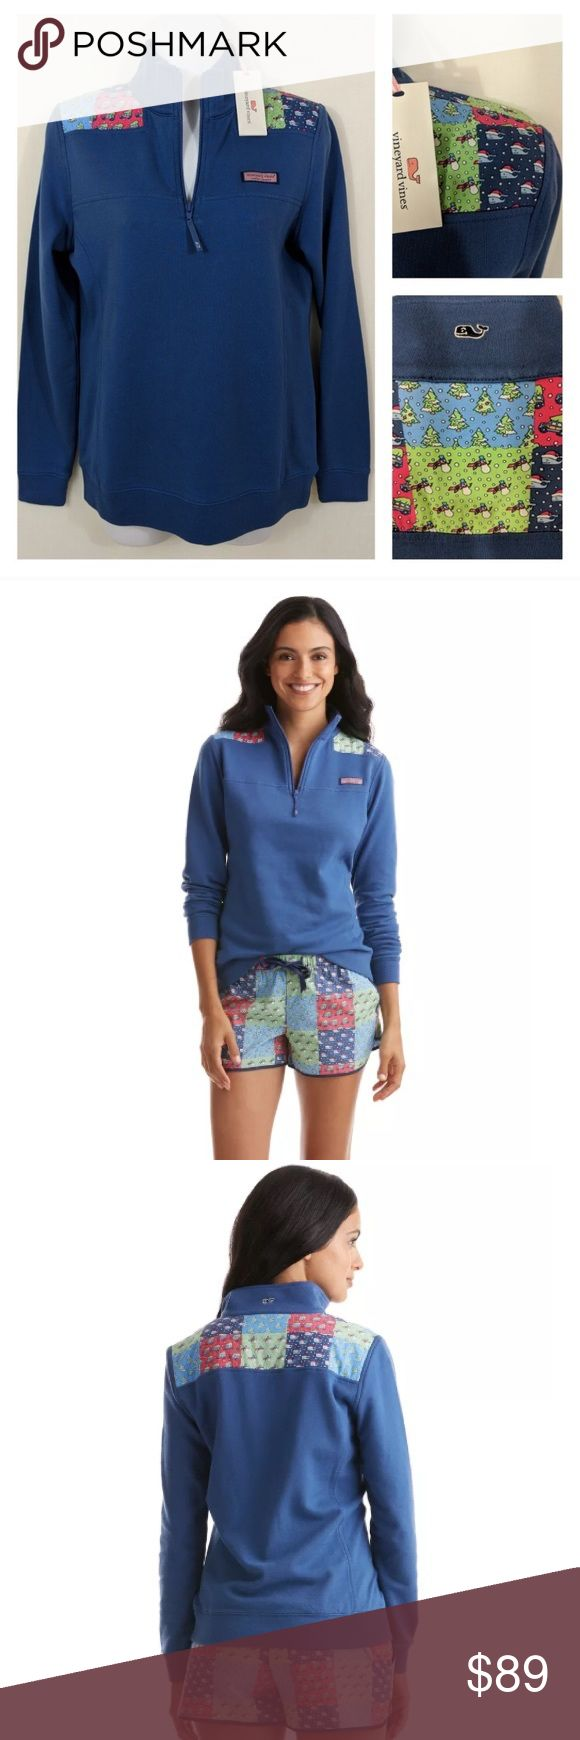 "Vineyard Vines Holiday Patchwork Pullover Take the holidays with you! Celebrate the season everywhere you go with our merry patchwork of holiday scenes on the shoulders of this cozy women's shep shirt.  Fabrics: · 100% cotton-French terry   Features: · 2X2 rib trim on cuff  · Embroidered whale on back neck  · Signature label on the chest  · Grosgrain zipper pull  · Holiday patchwork pattern on shoulders  · Measurements: pit to pit 18""shoulder to hem 24"" (size XS) pit to pit 17.5"" shoulder to…"